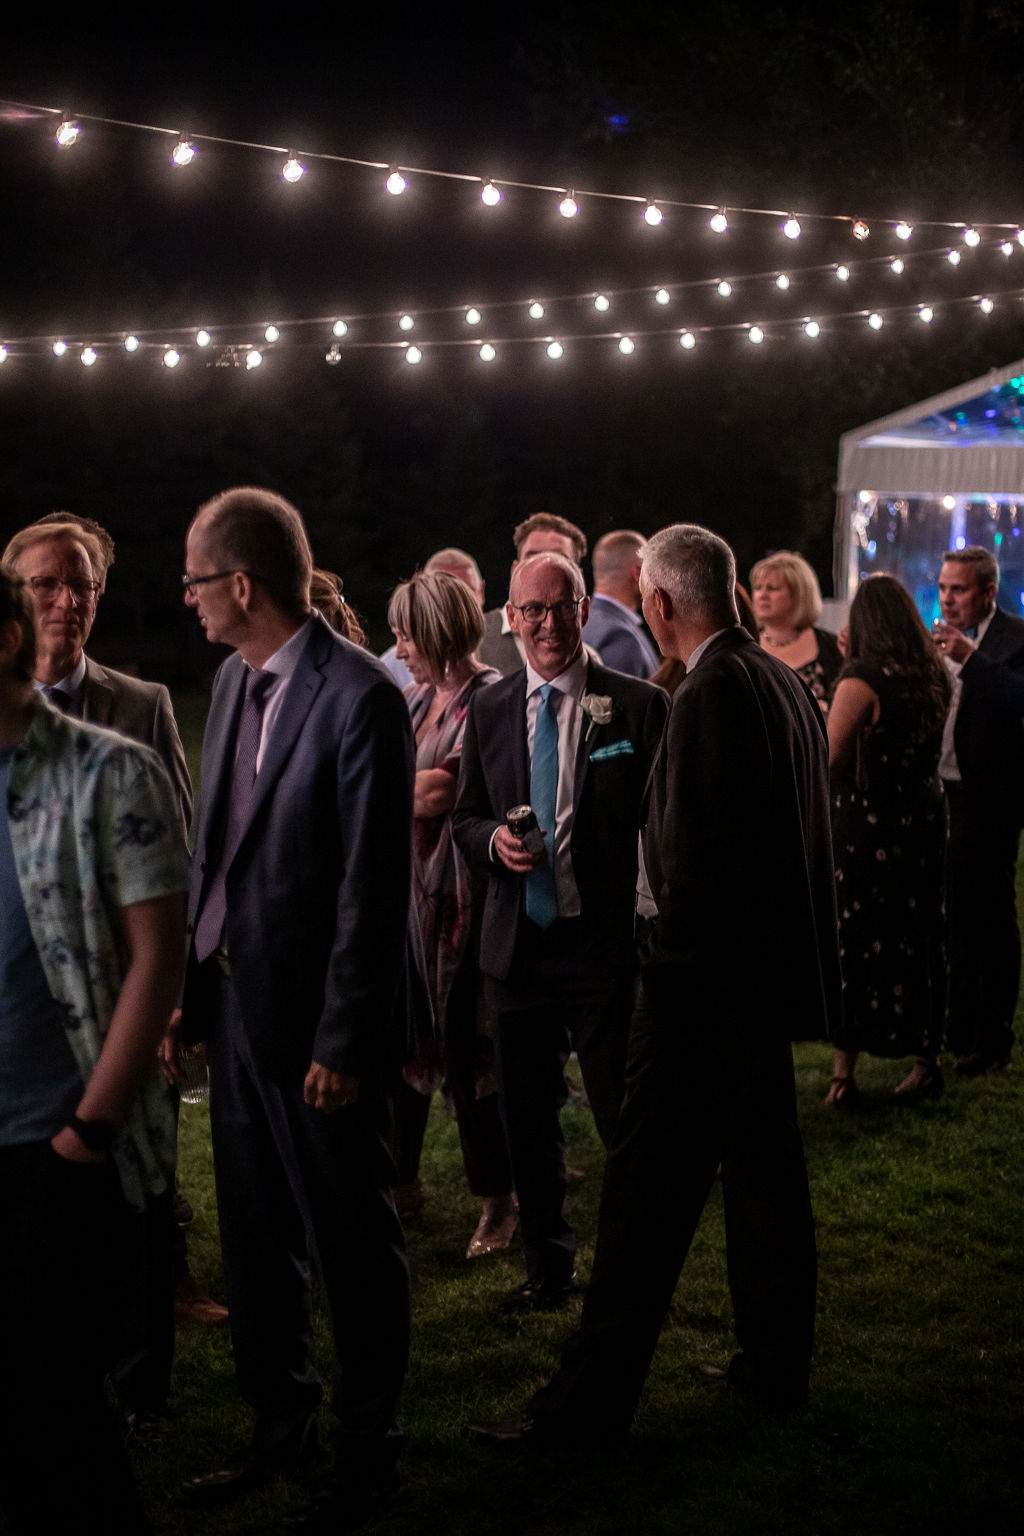 wedding guests stand in the dessert line while globe lights are strung overtop